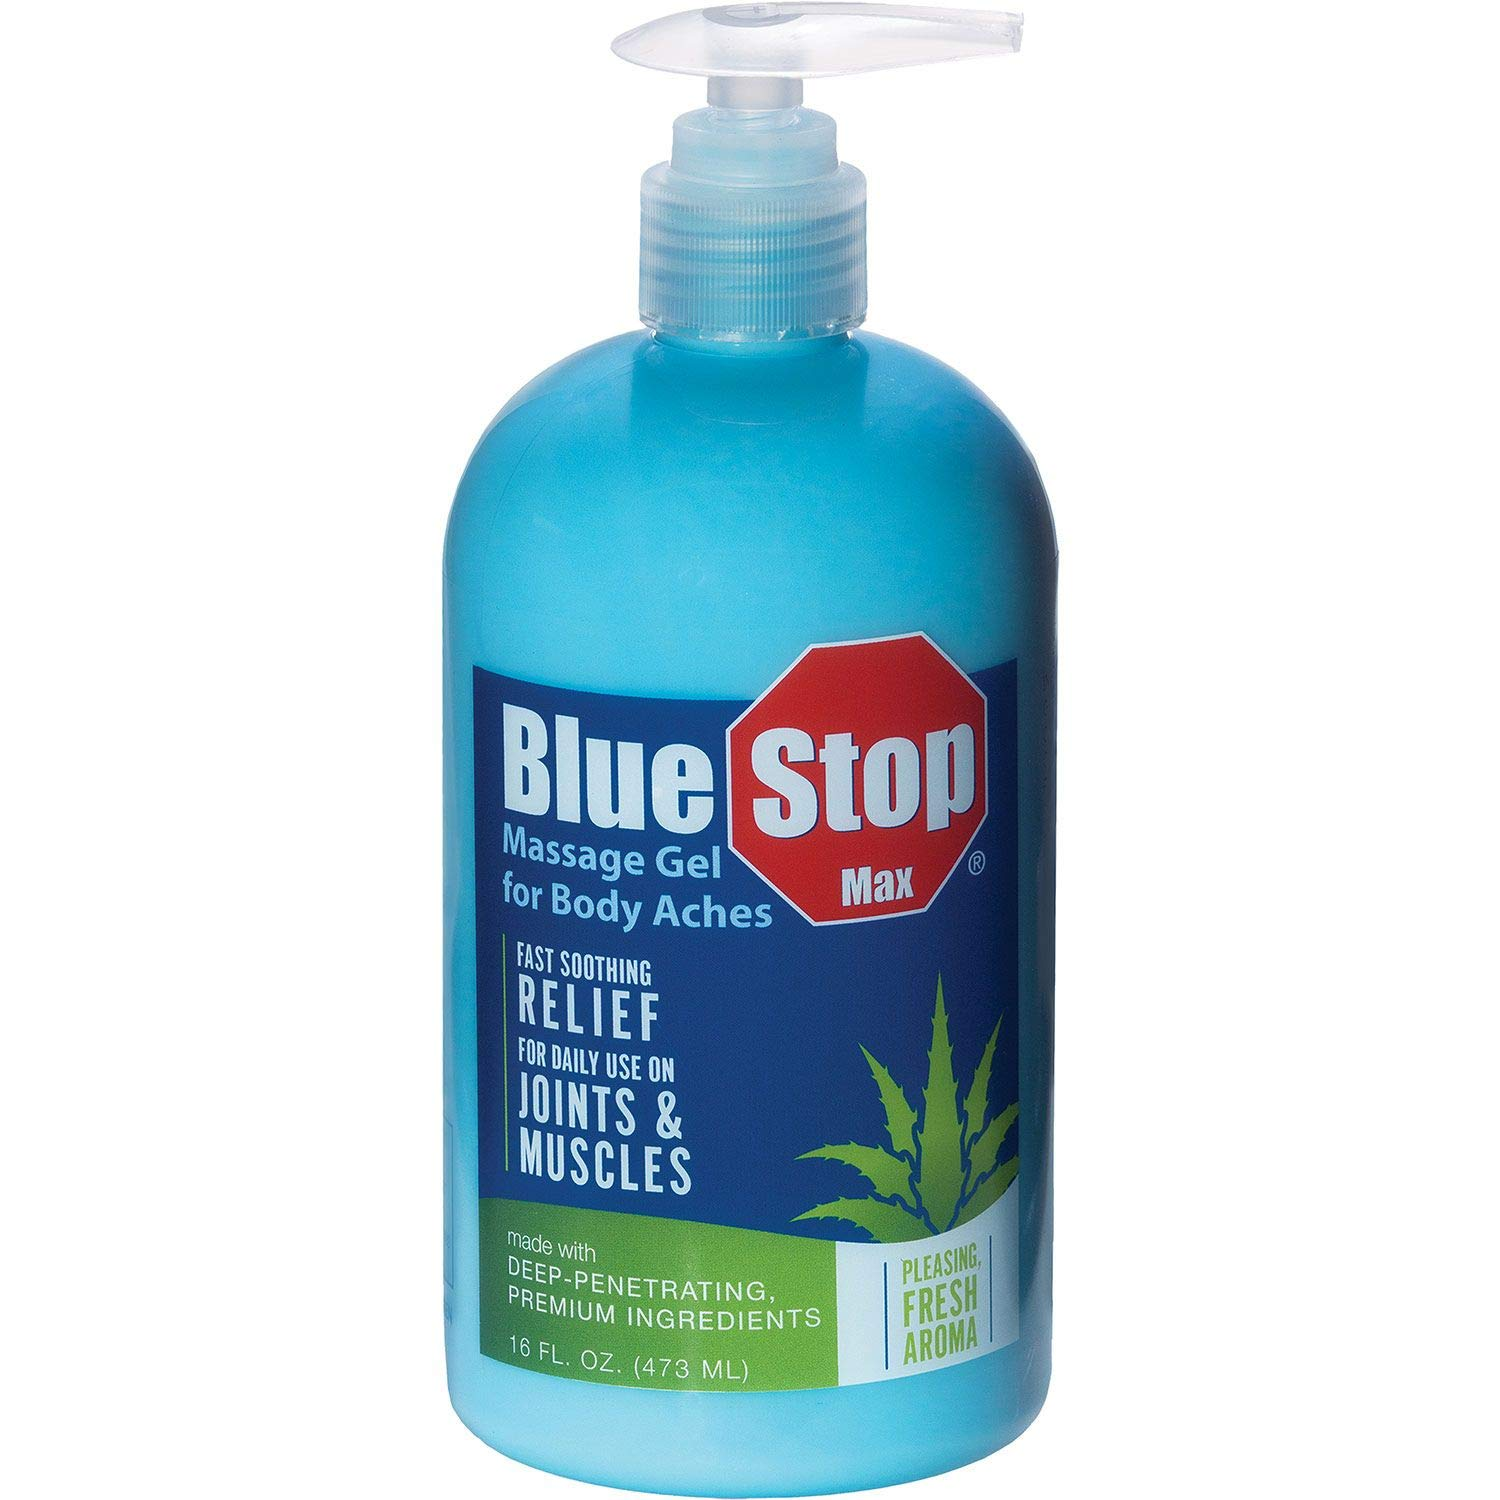 Blue Stop Max Massage Gel for Body Aches, Special 2 Pack ( 32 oz Total ) by Blue Stop Max